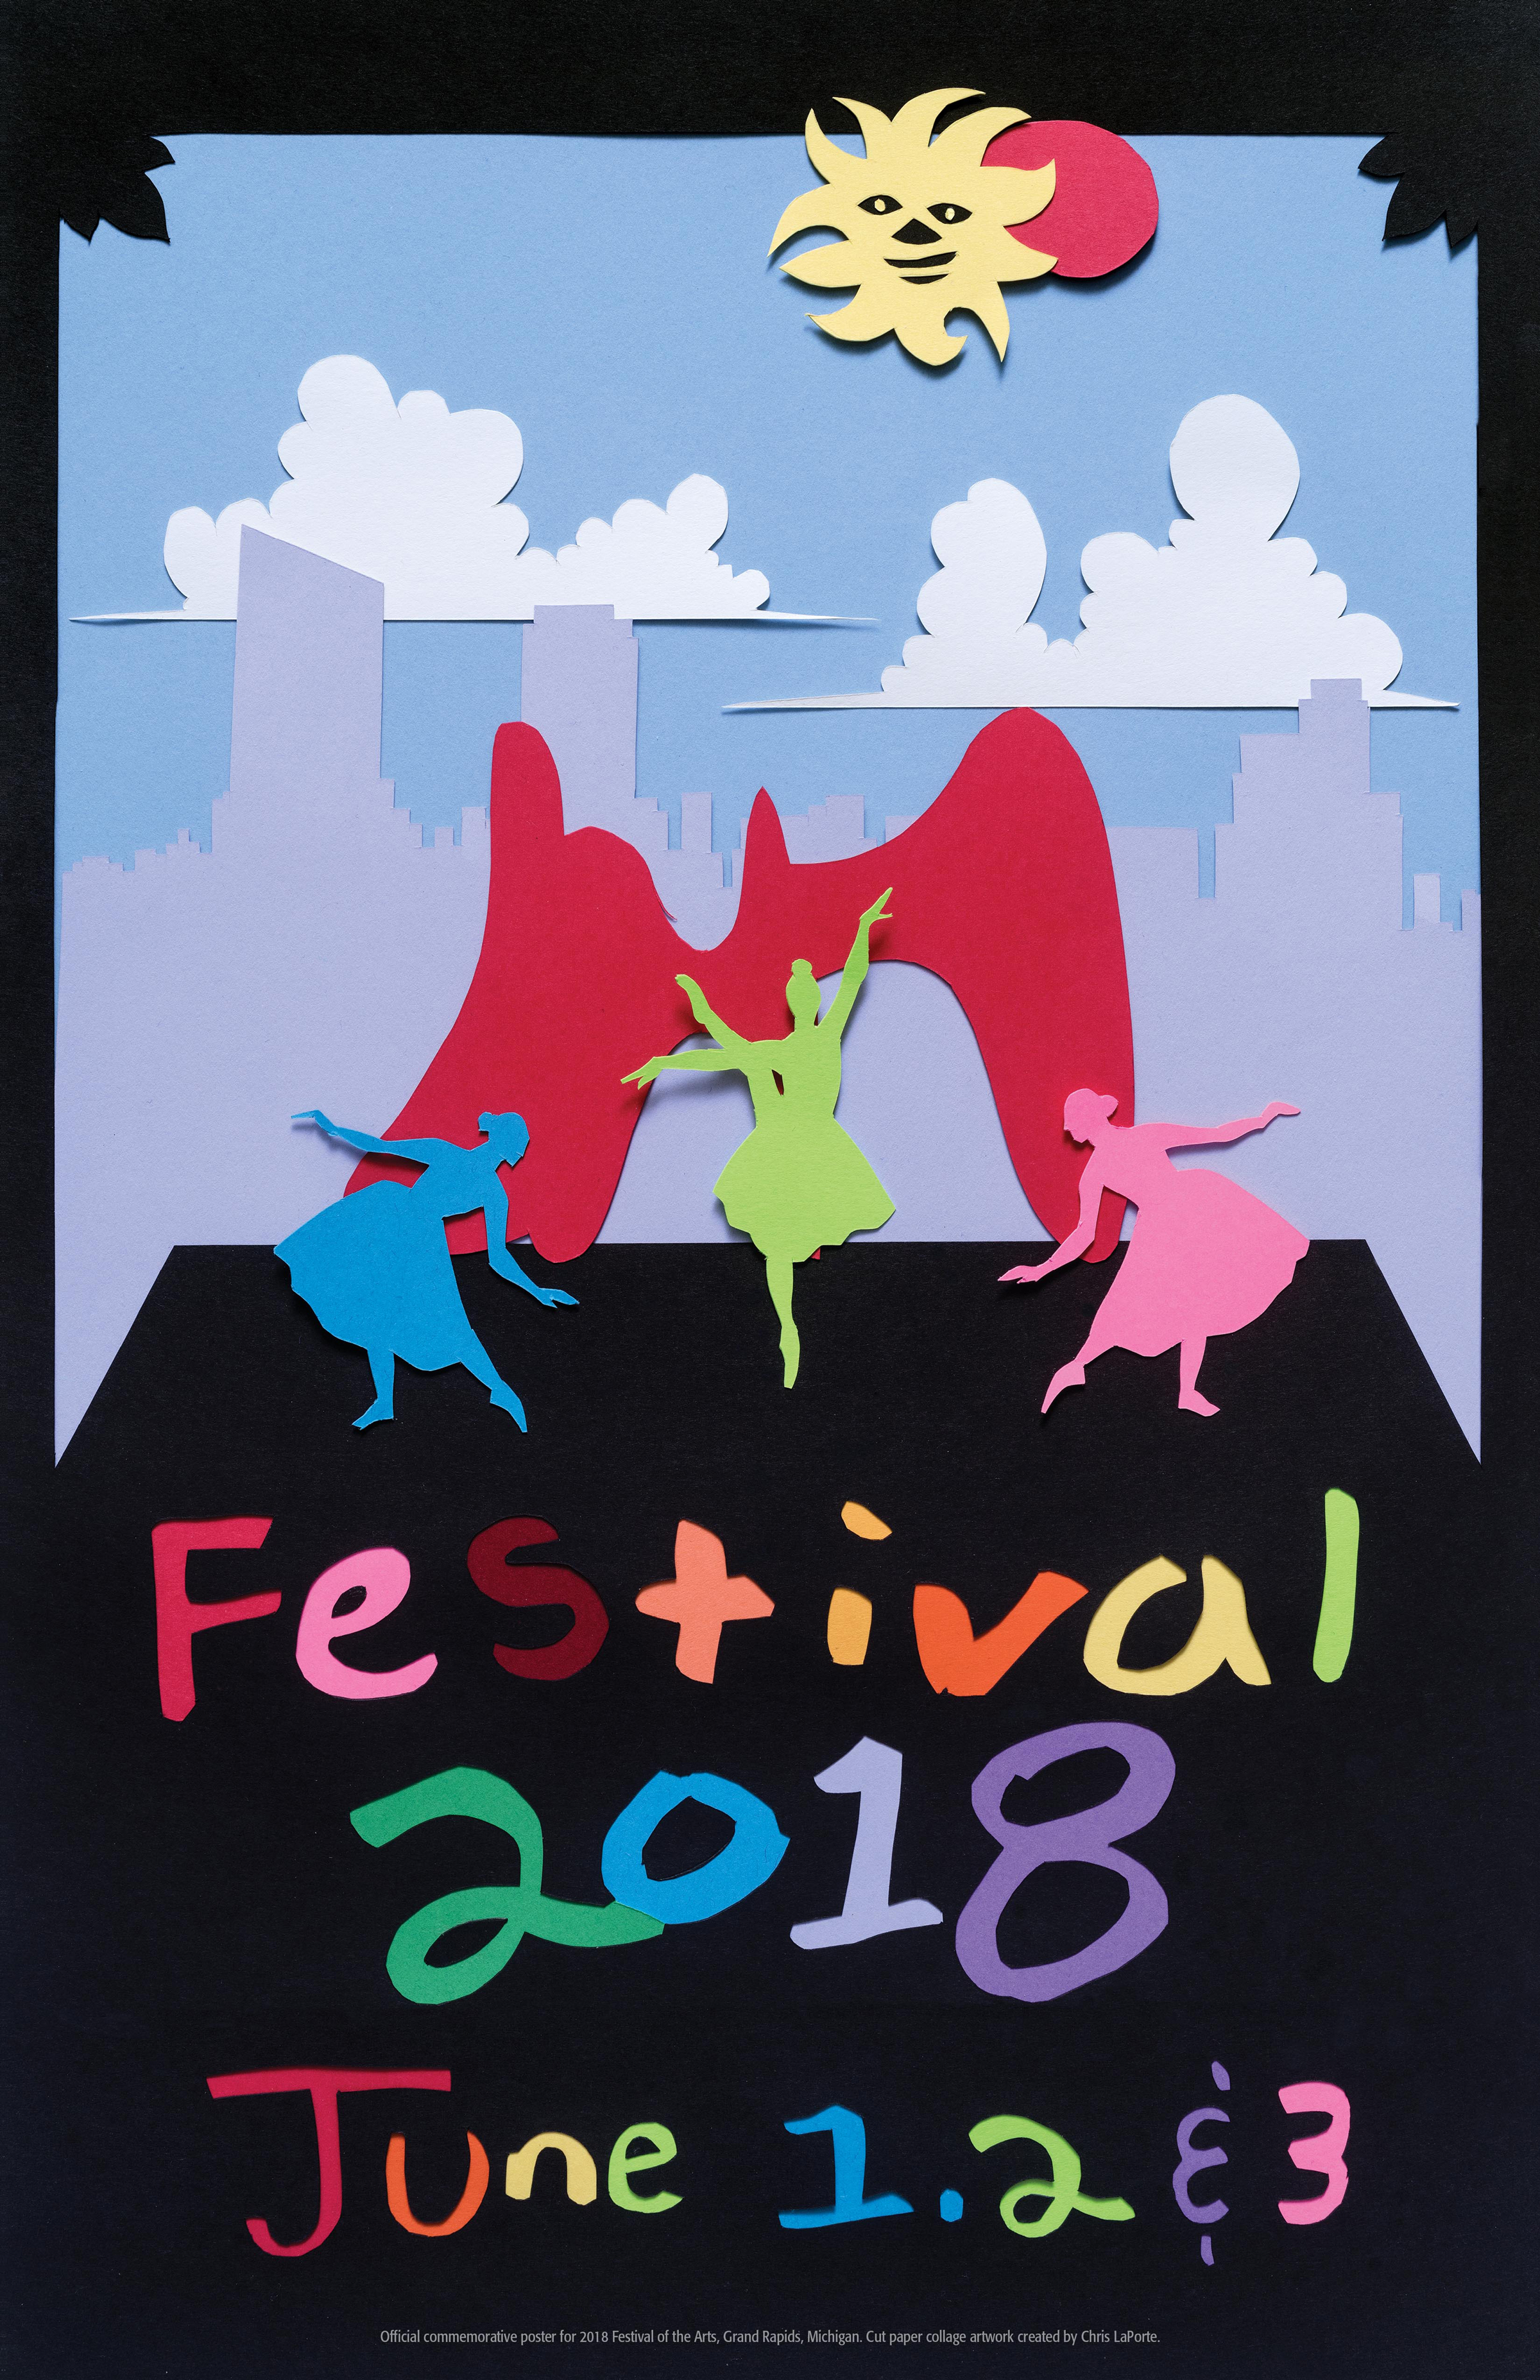 2018 Festival of the Arts Poster designed by Chris LaPorte